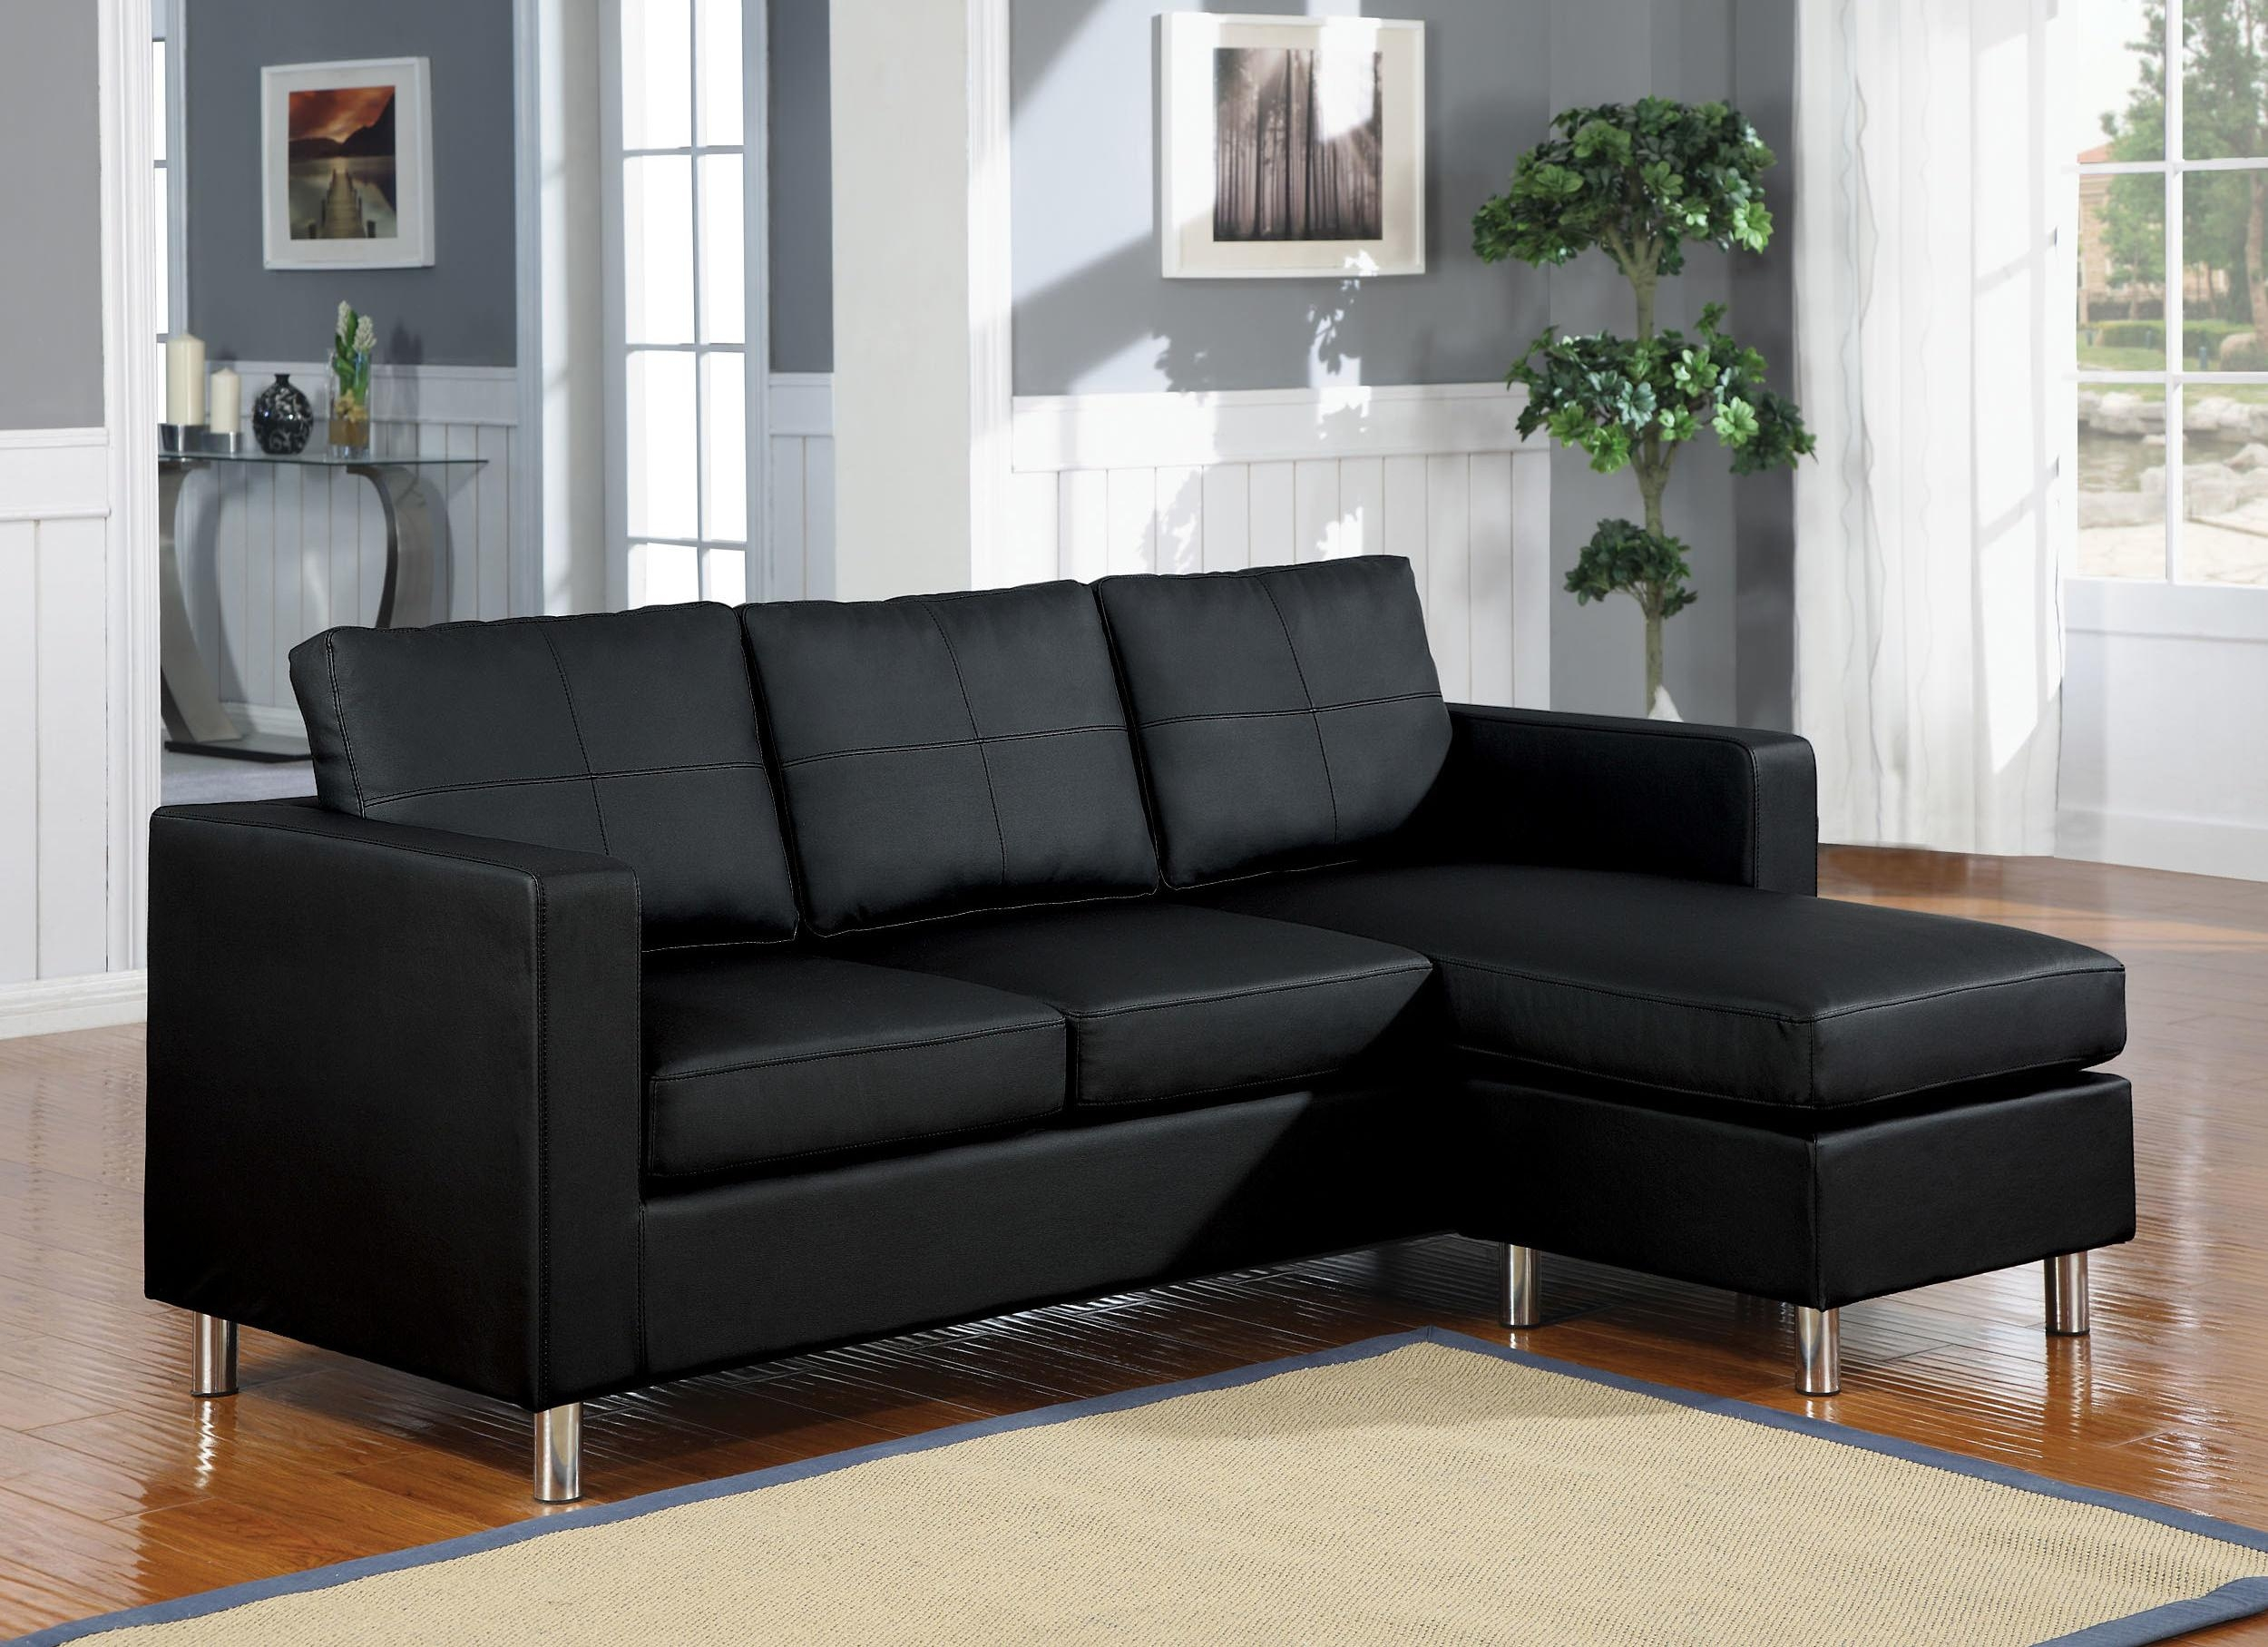 Inspirations Small Sofas Chaise Lounge Sofa Ideas